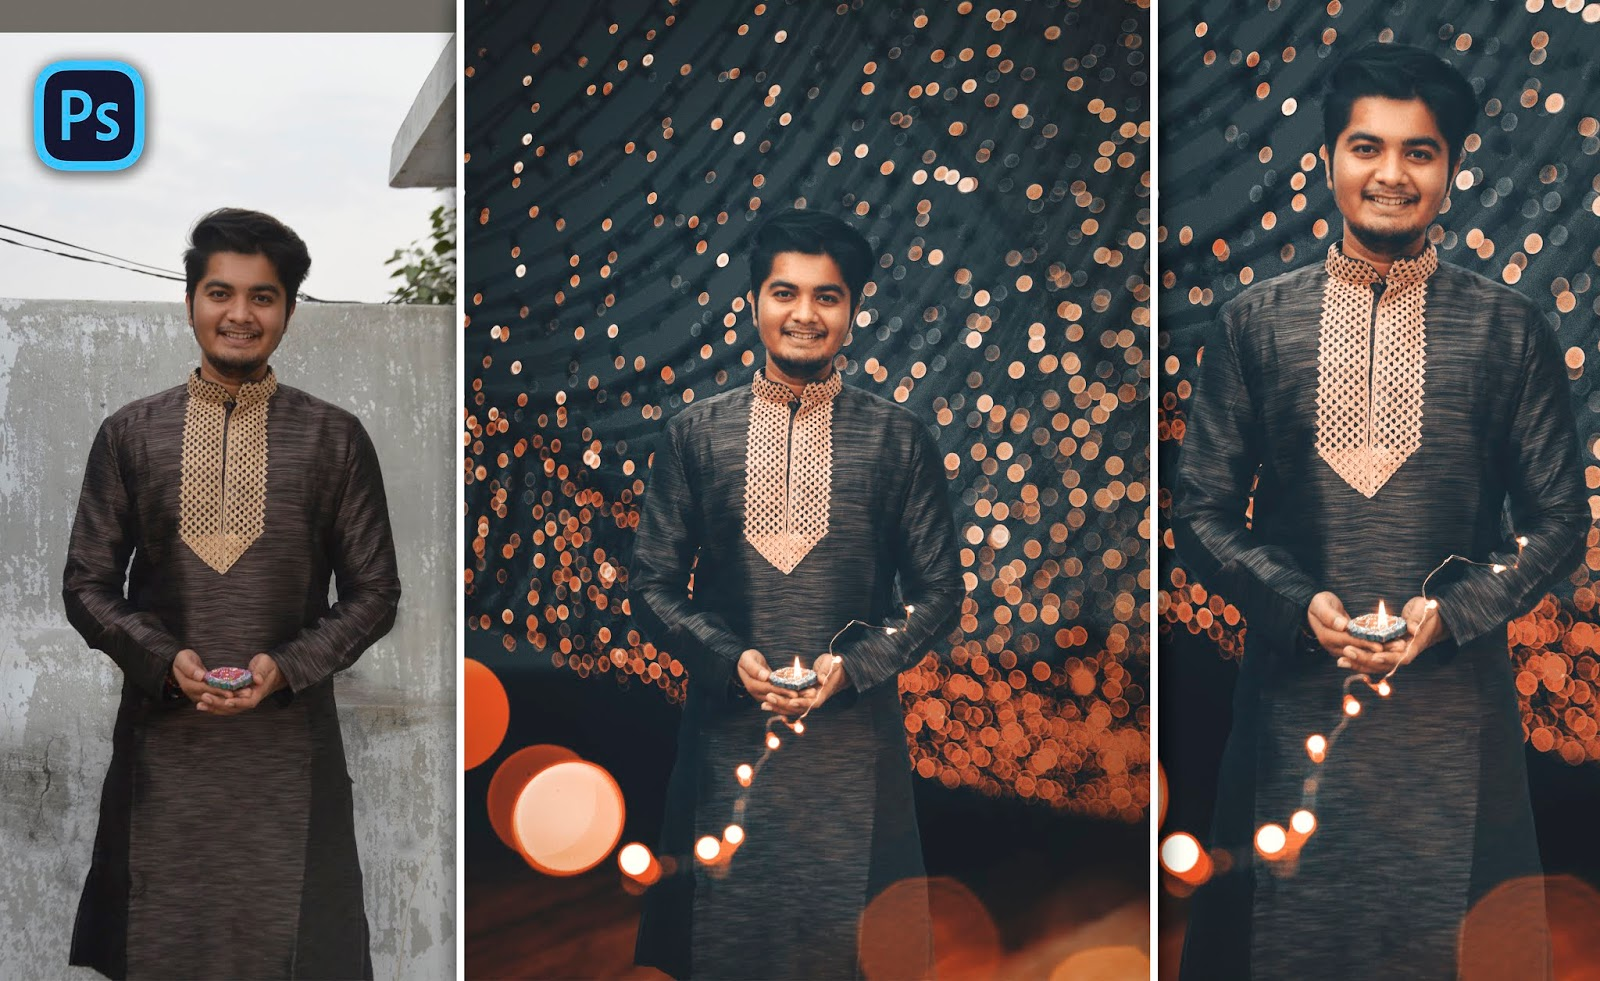 New Concept for Diwali Special Photo Editing in Photoshop cc | Diwali Photo Manipulation